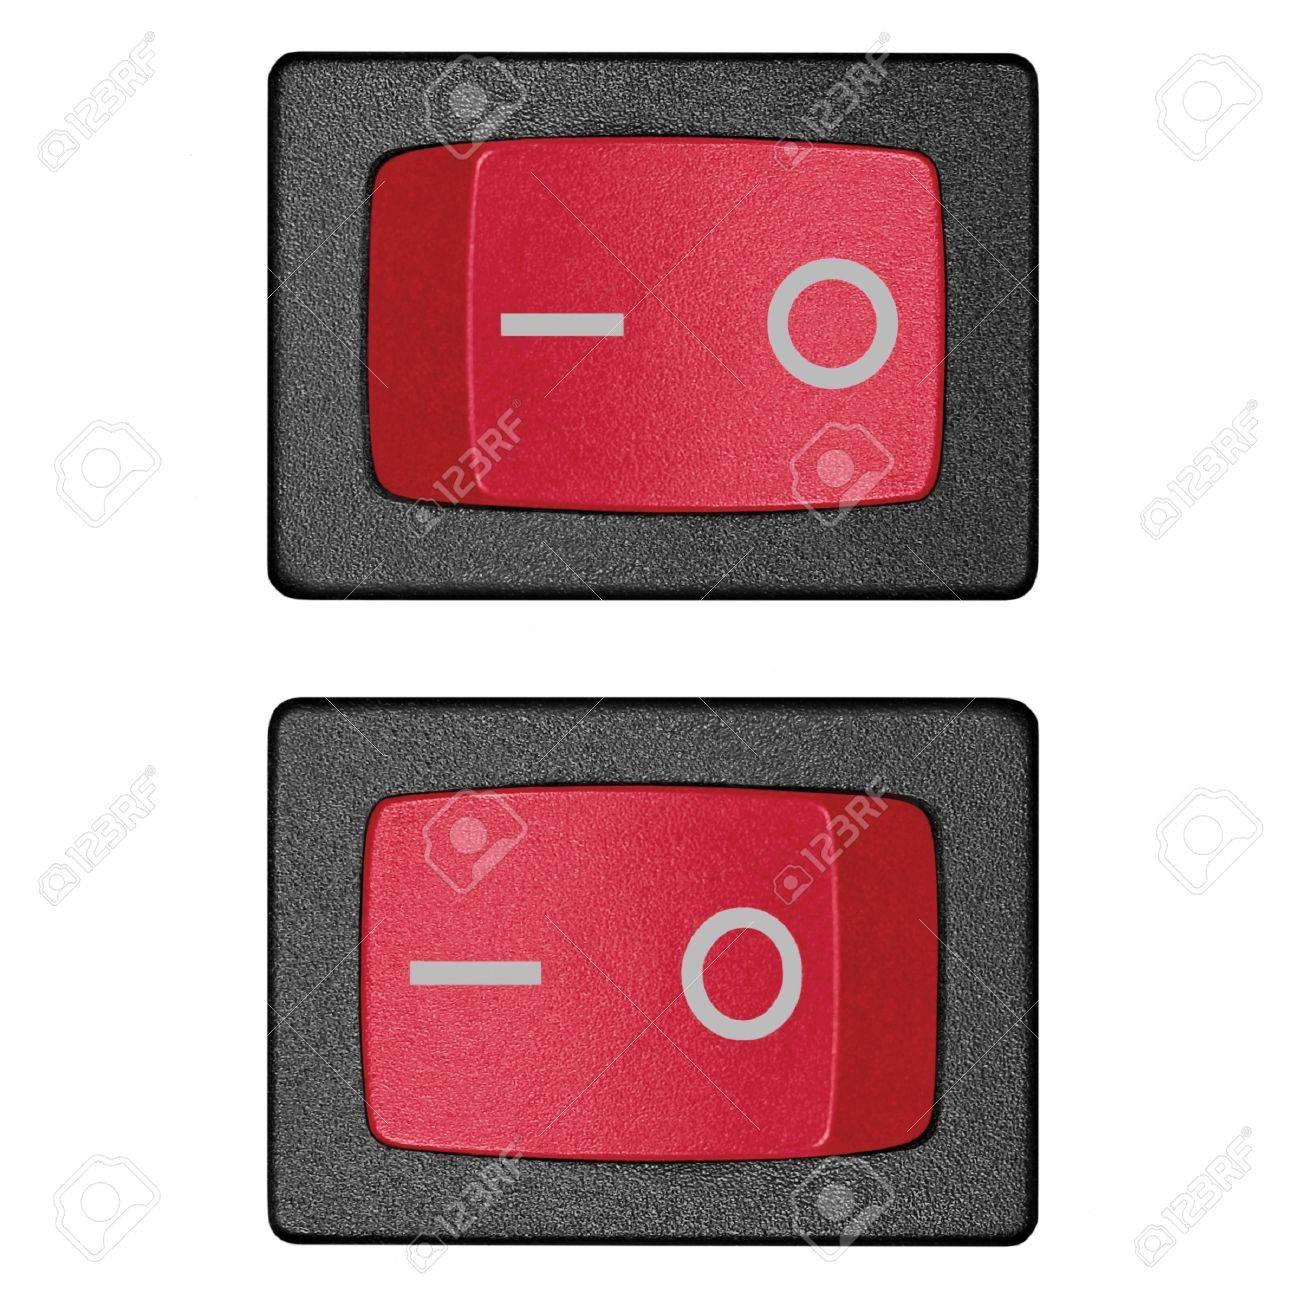 Awesome off and on switch symbols ideas electrical and wiring off and on switch symbols dolgular biocorpaavc